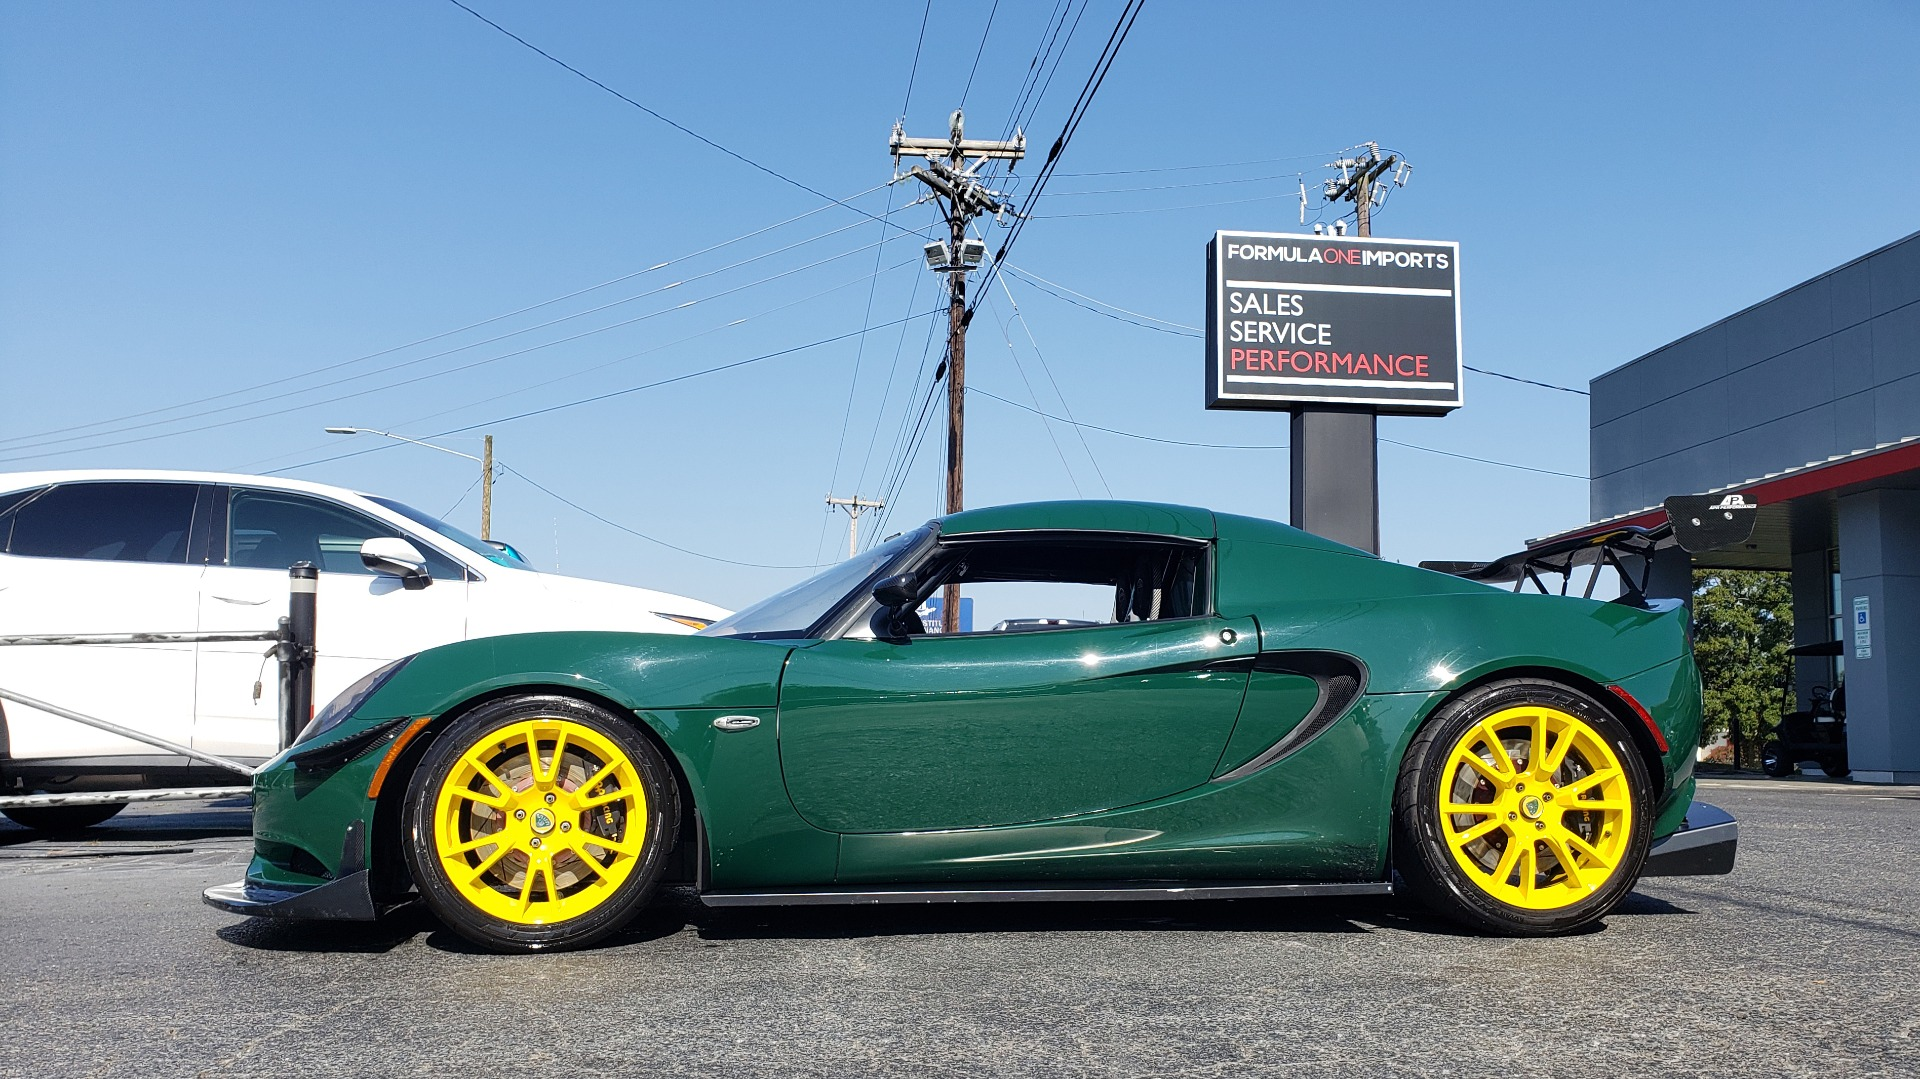 Used 2011 Lotus ELISE SC RACE CAR / UP TO DATE / READY TO RACE W/3-SETS WHEELS & TIRES for sale $51,999 at Formula Imports in Charlotte NC 28227 4